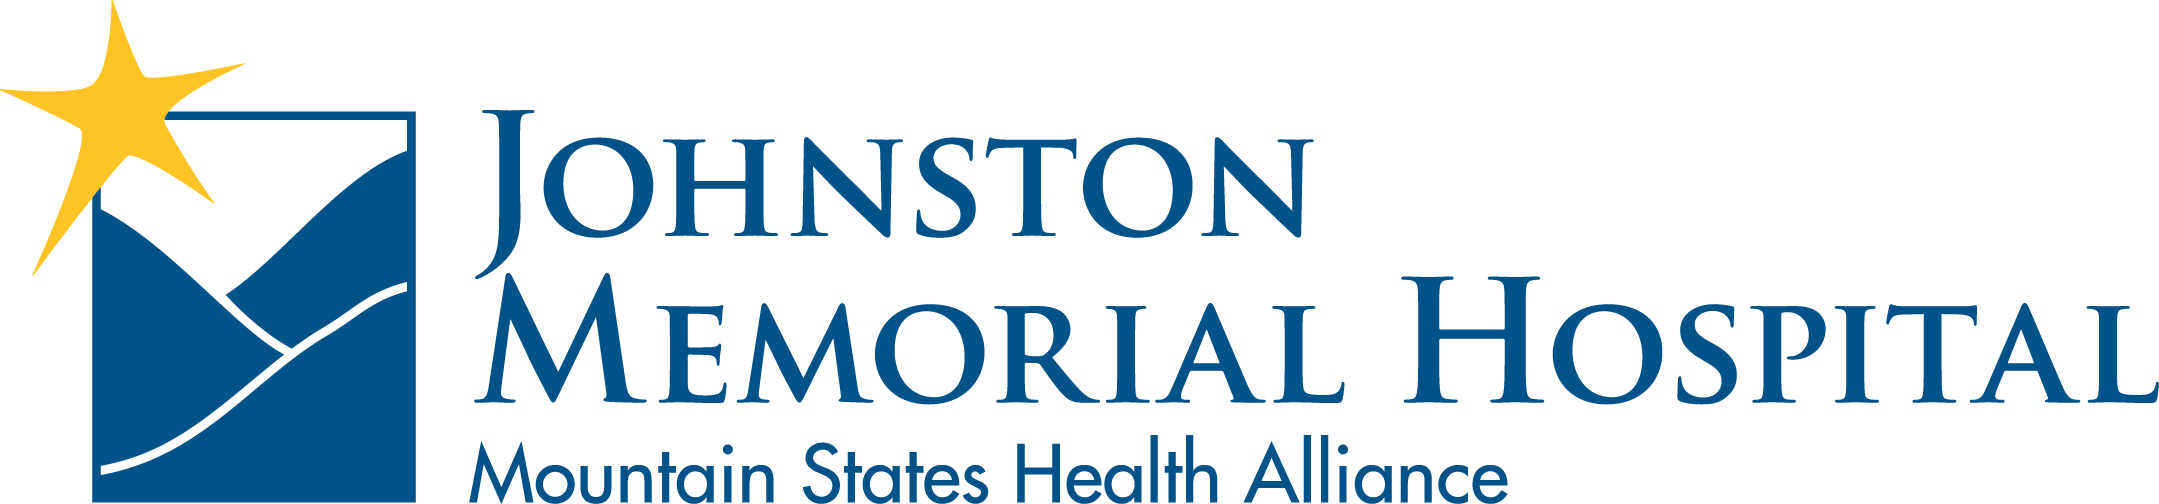 Johnston Memorial Hospital's Logo